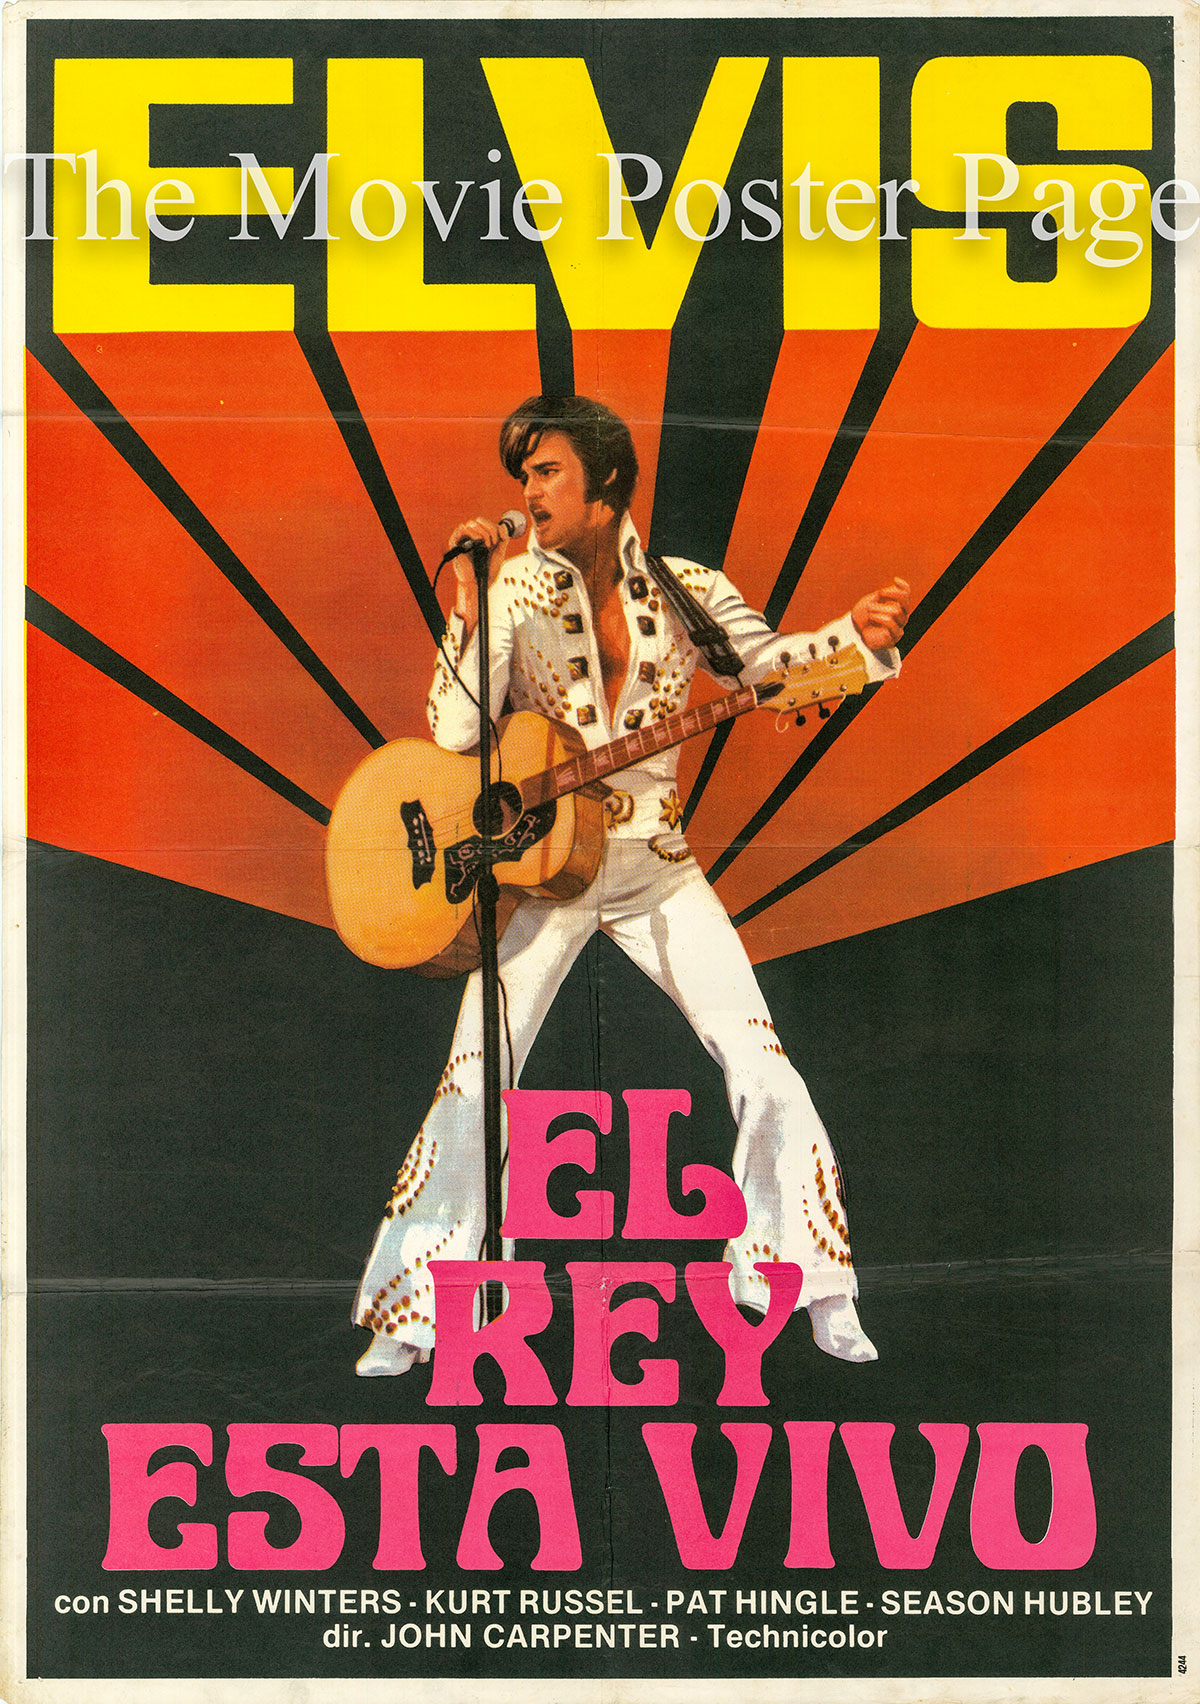 Pictured is a Spanish one-sheet poster for the 1979 John Carpenter film Elvis starring Kurt Russell as Elvis Presley.